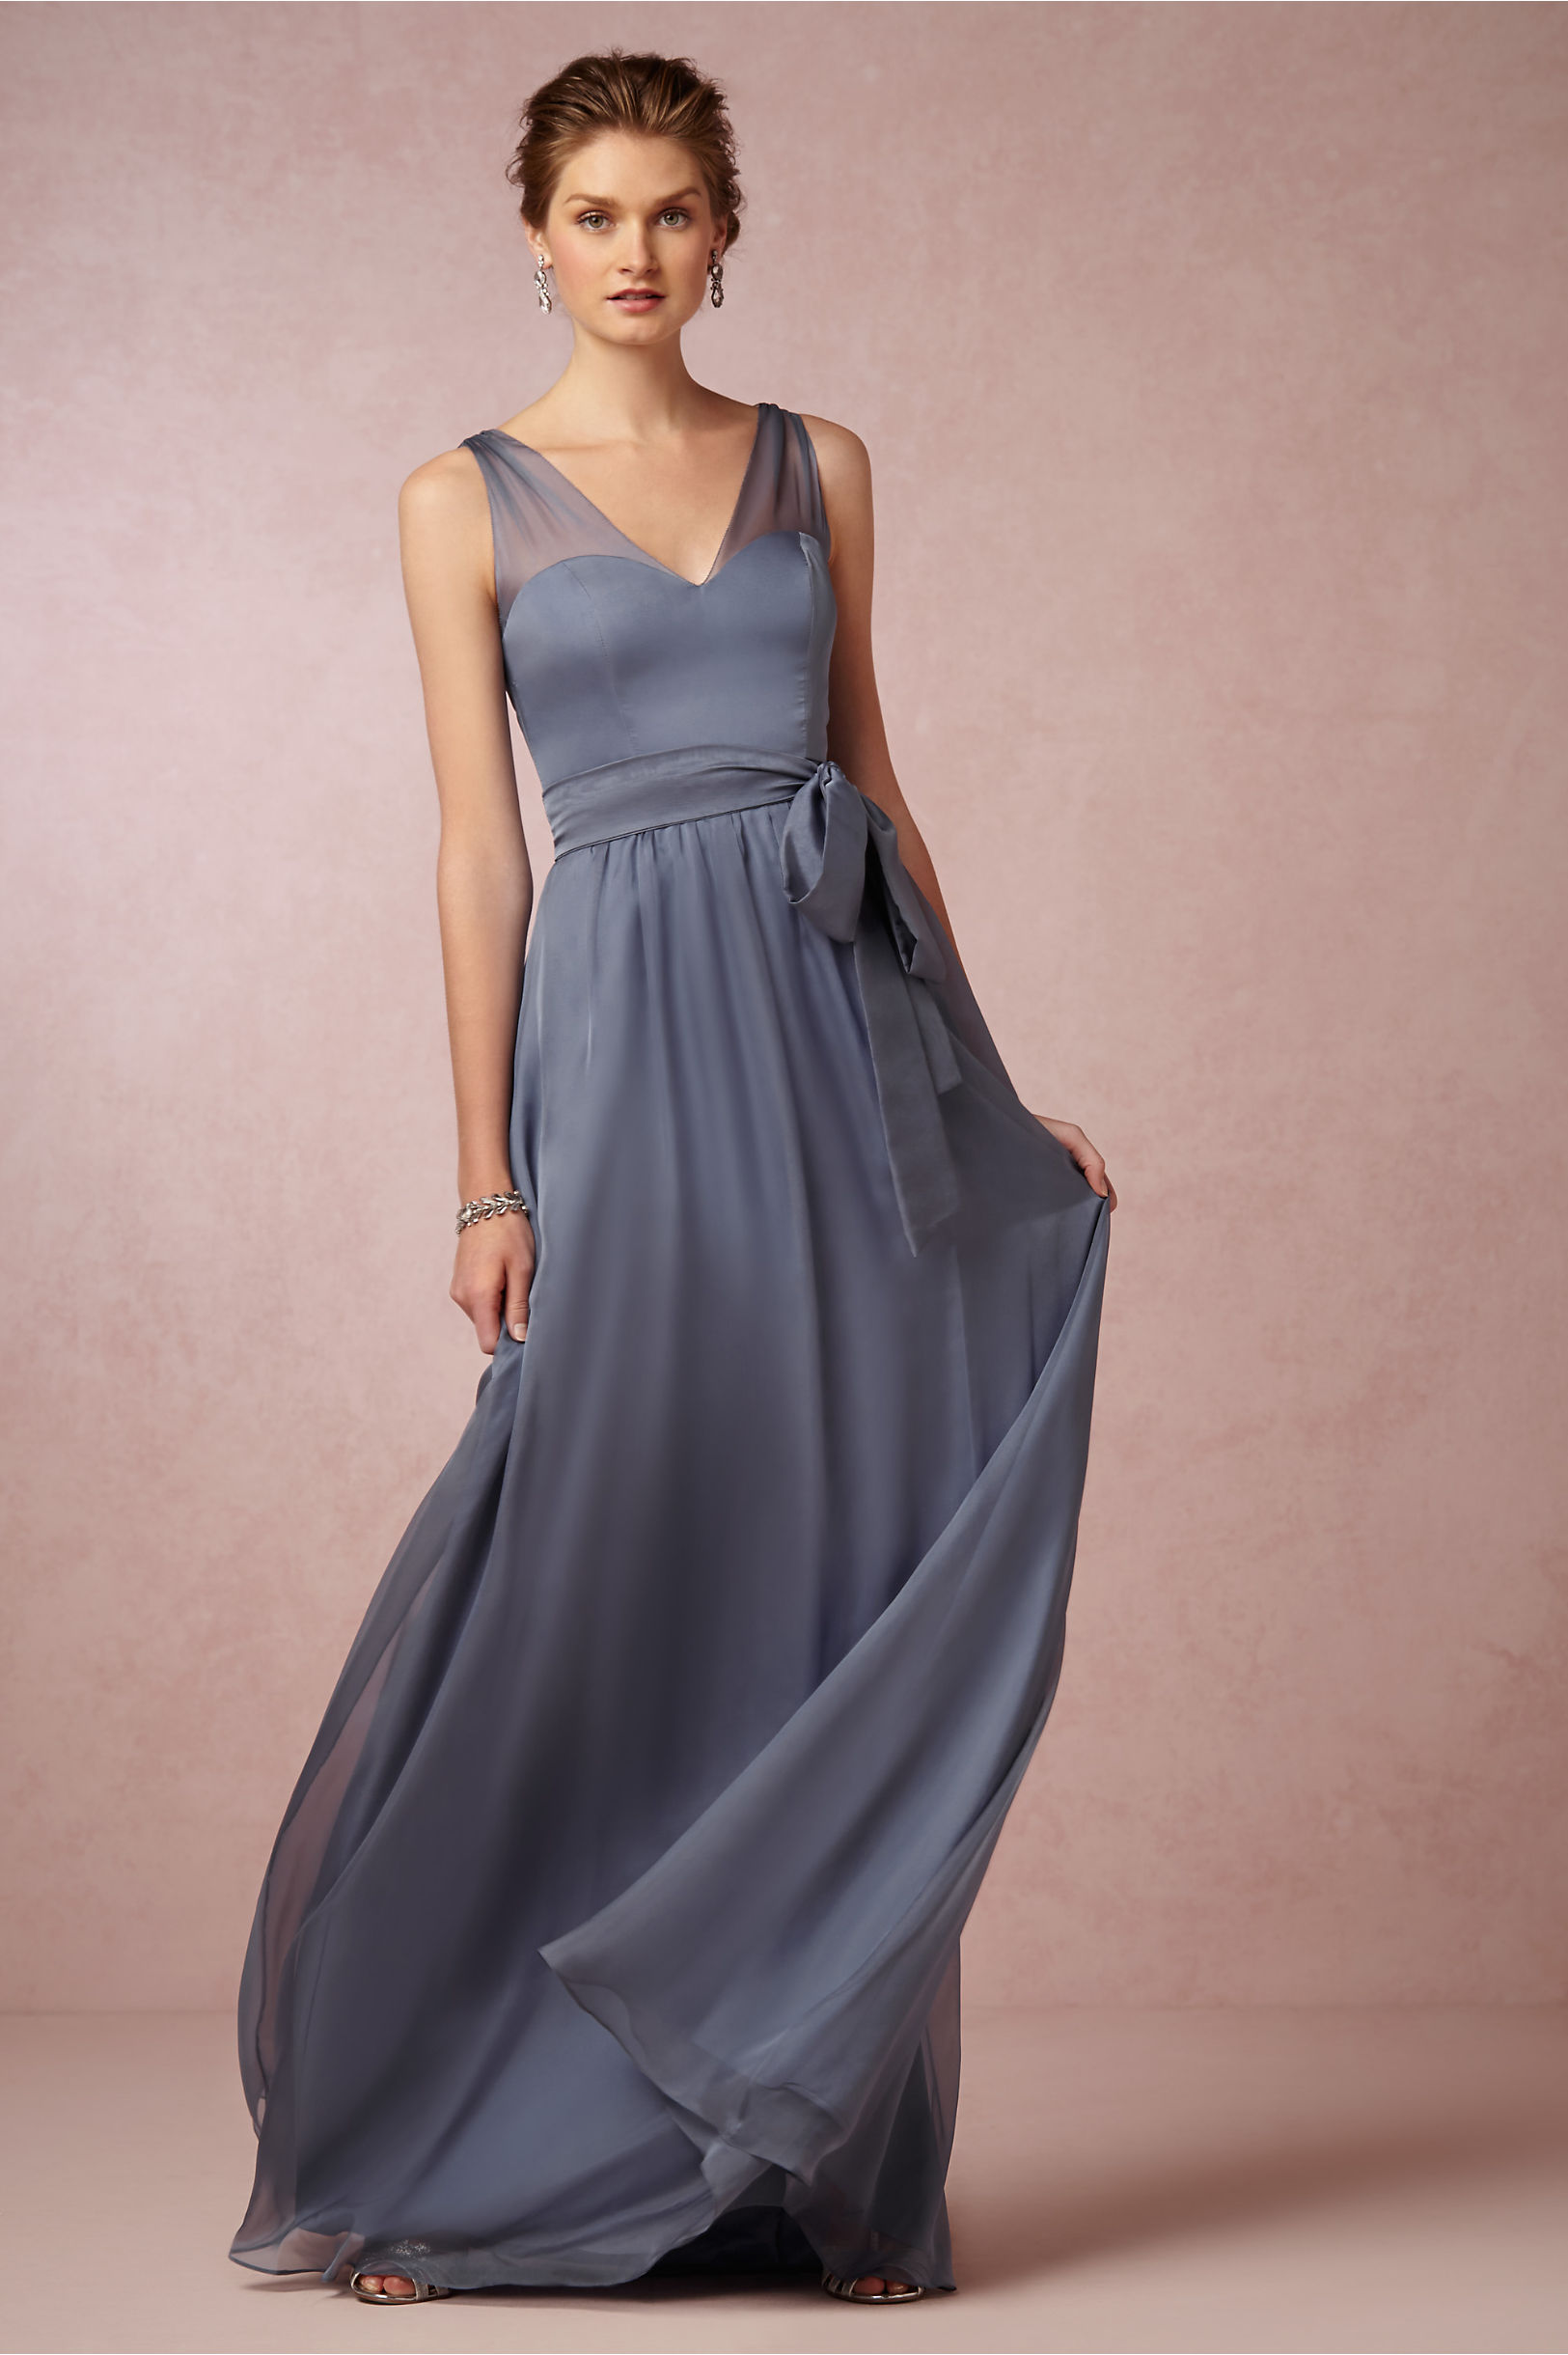 Josephine dress in bridal party bhldn steel blue josephine dress bhldn ombrellifo Gallery